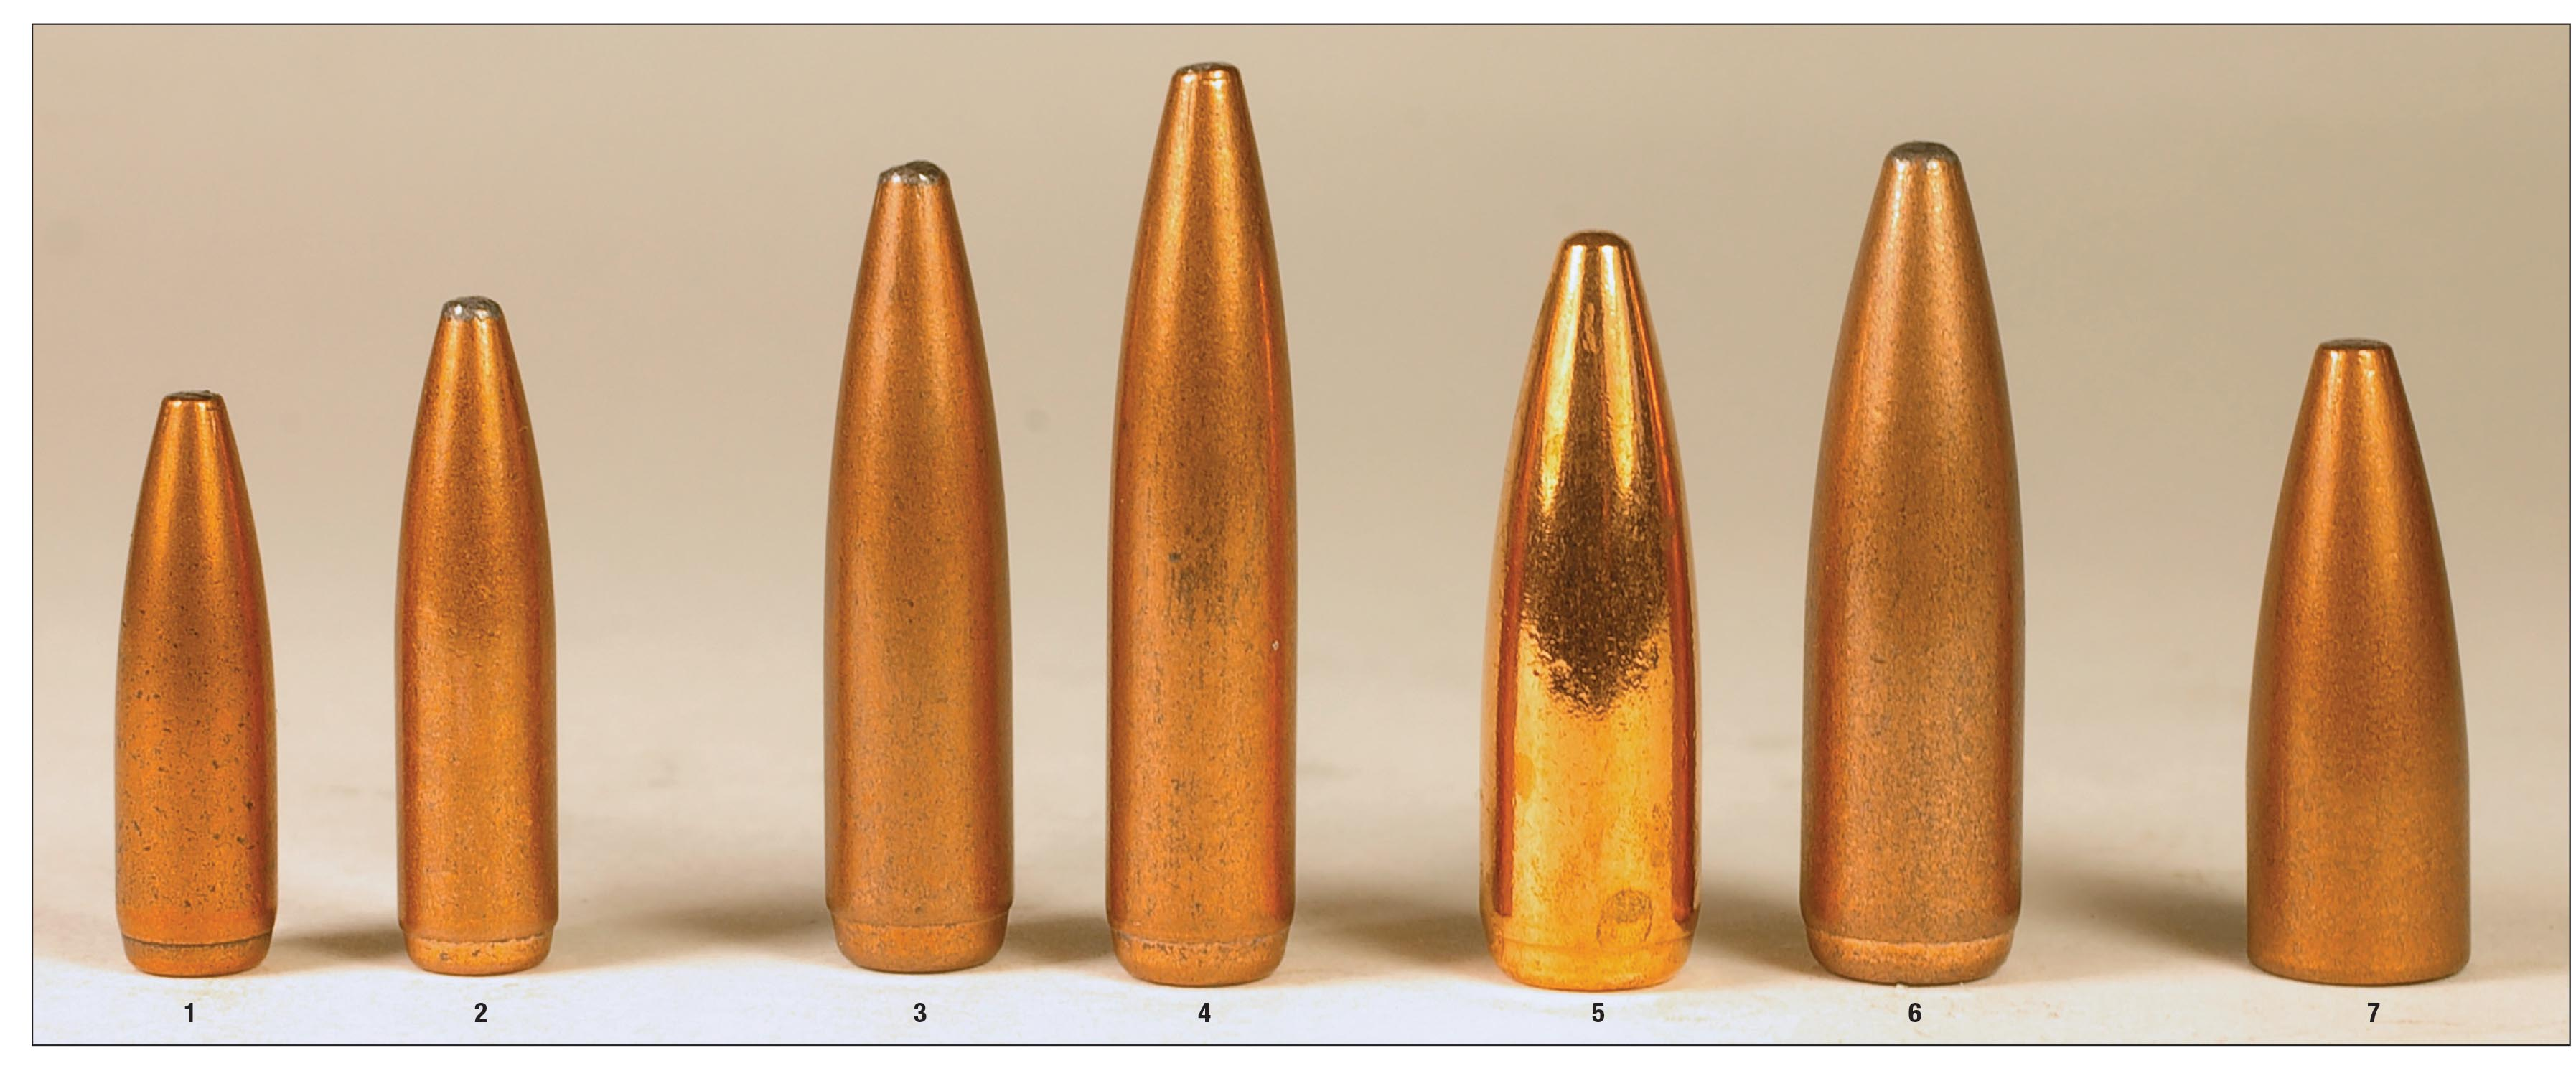 These Speer Gold Dot rifle bullets were handloaded in several different cartridges from .223 Remington to the 7.62x39. They include .22-caliber (1) 62- and (2) 75-grain examples, 6.5mm (3) 120- and (4) 140-grain bullets, .30-caliber (5) 150- and (6) 168-grain examples and a .30-caliber (.310 inch) (7) 123-grain bullet.